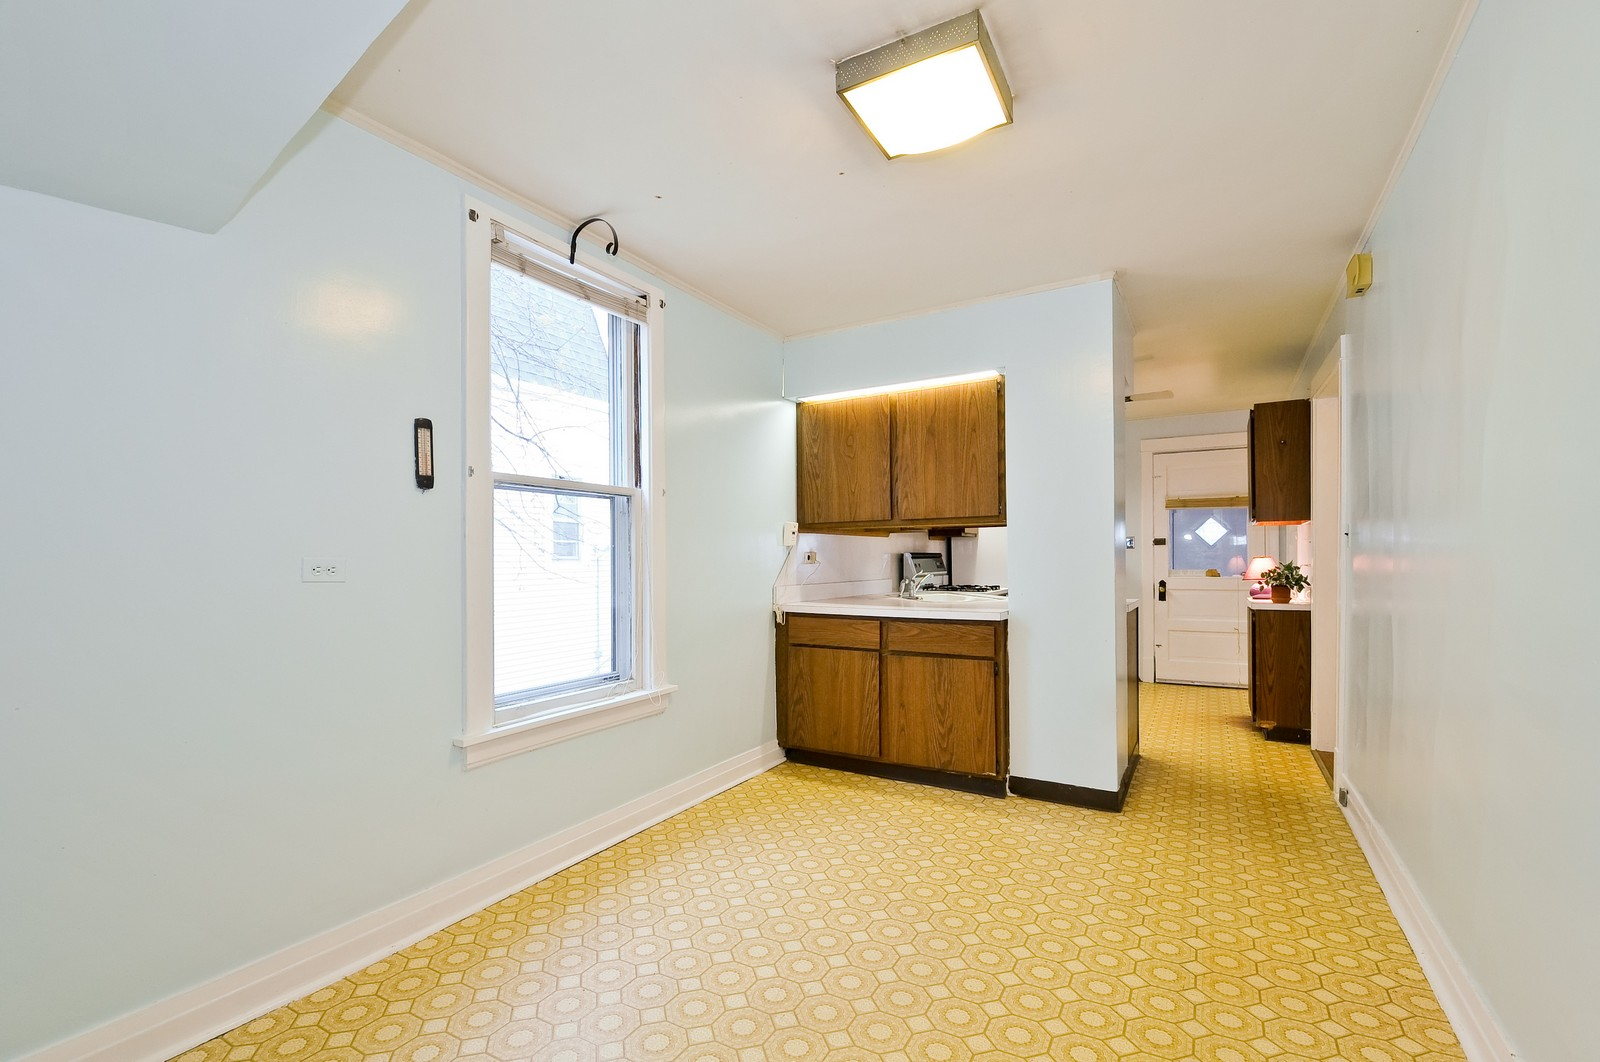 Real Estate Photography - 4435 N Avers Ave, Chicago, IL, 60625 - Kitchen / Breakfast Room